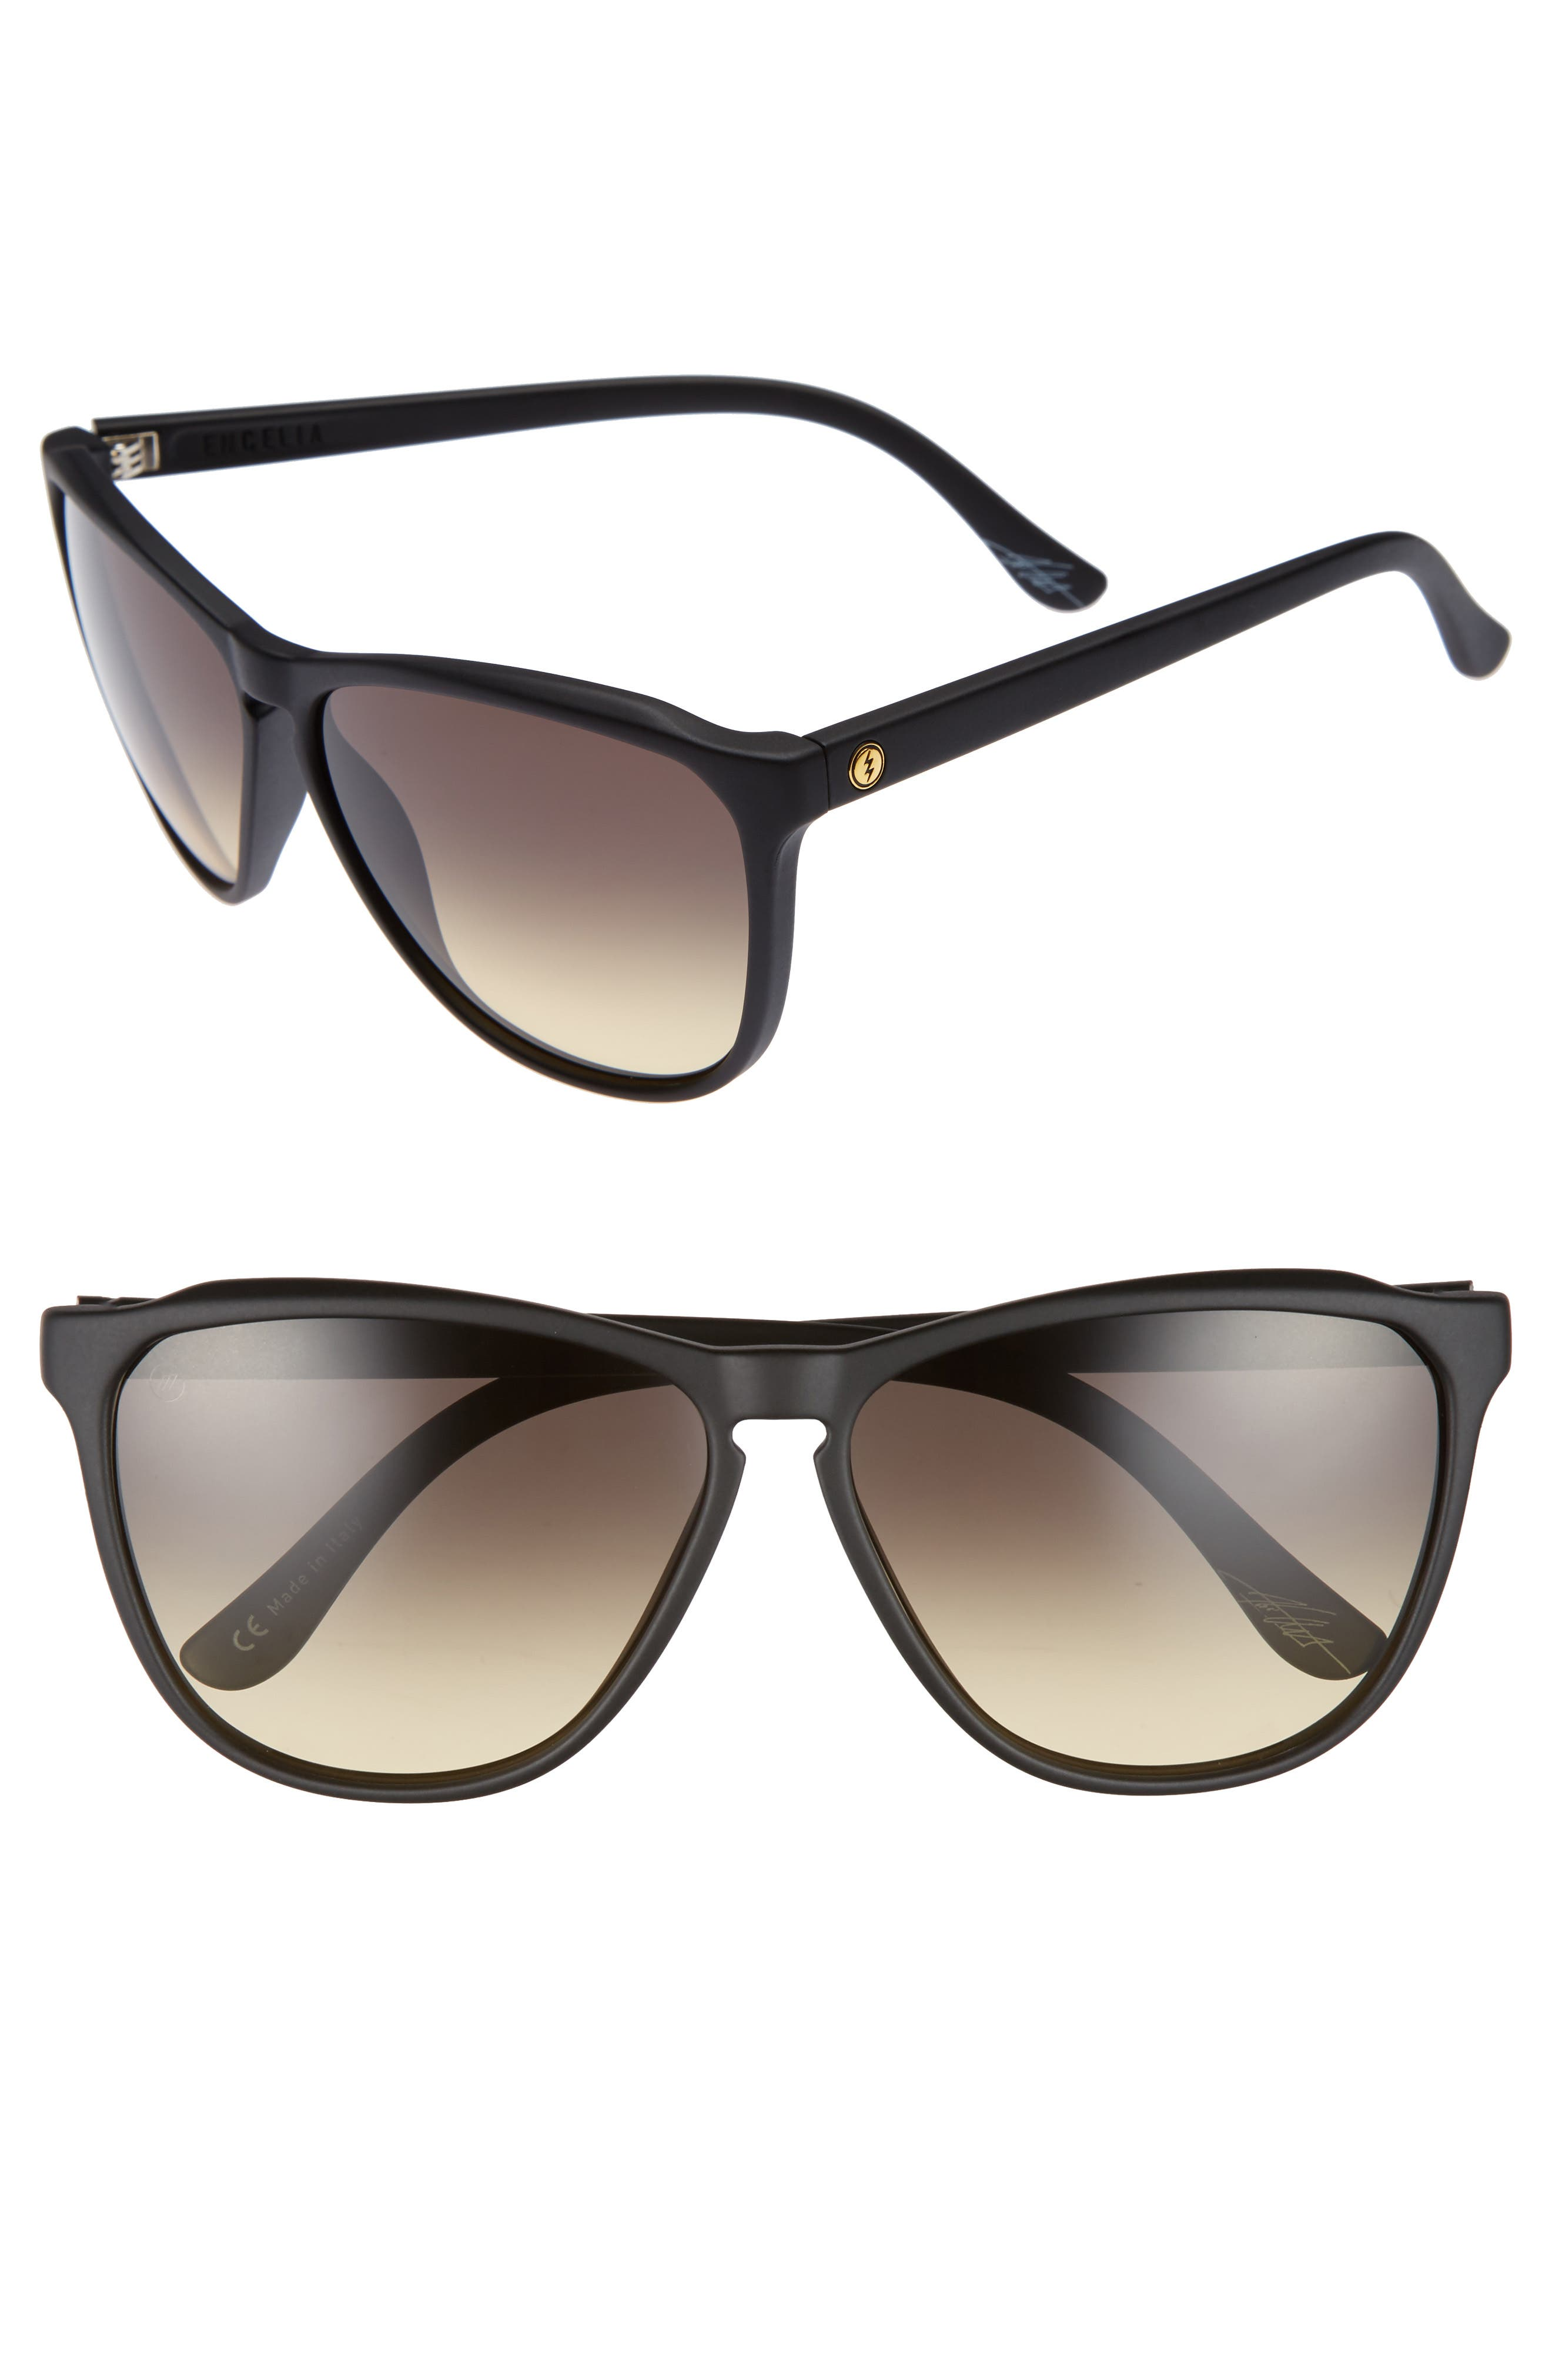 ELECTRIC 'Encelia' 66mm Retro Sunglasses